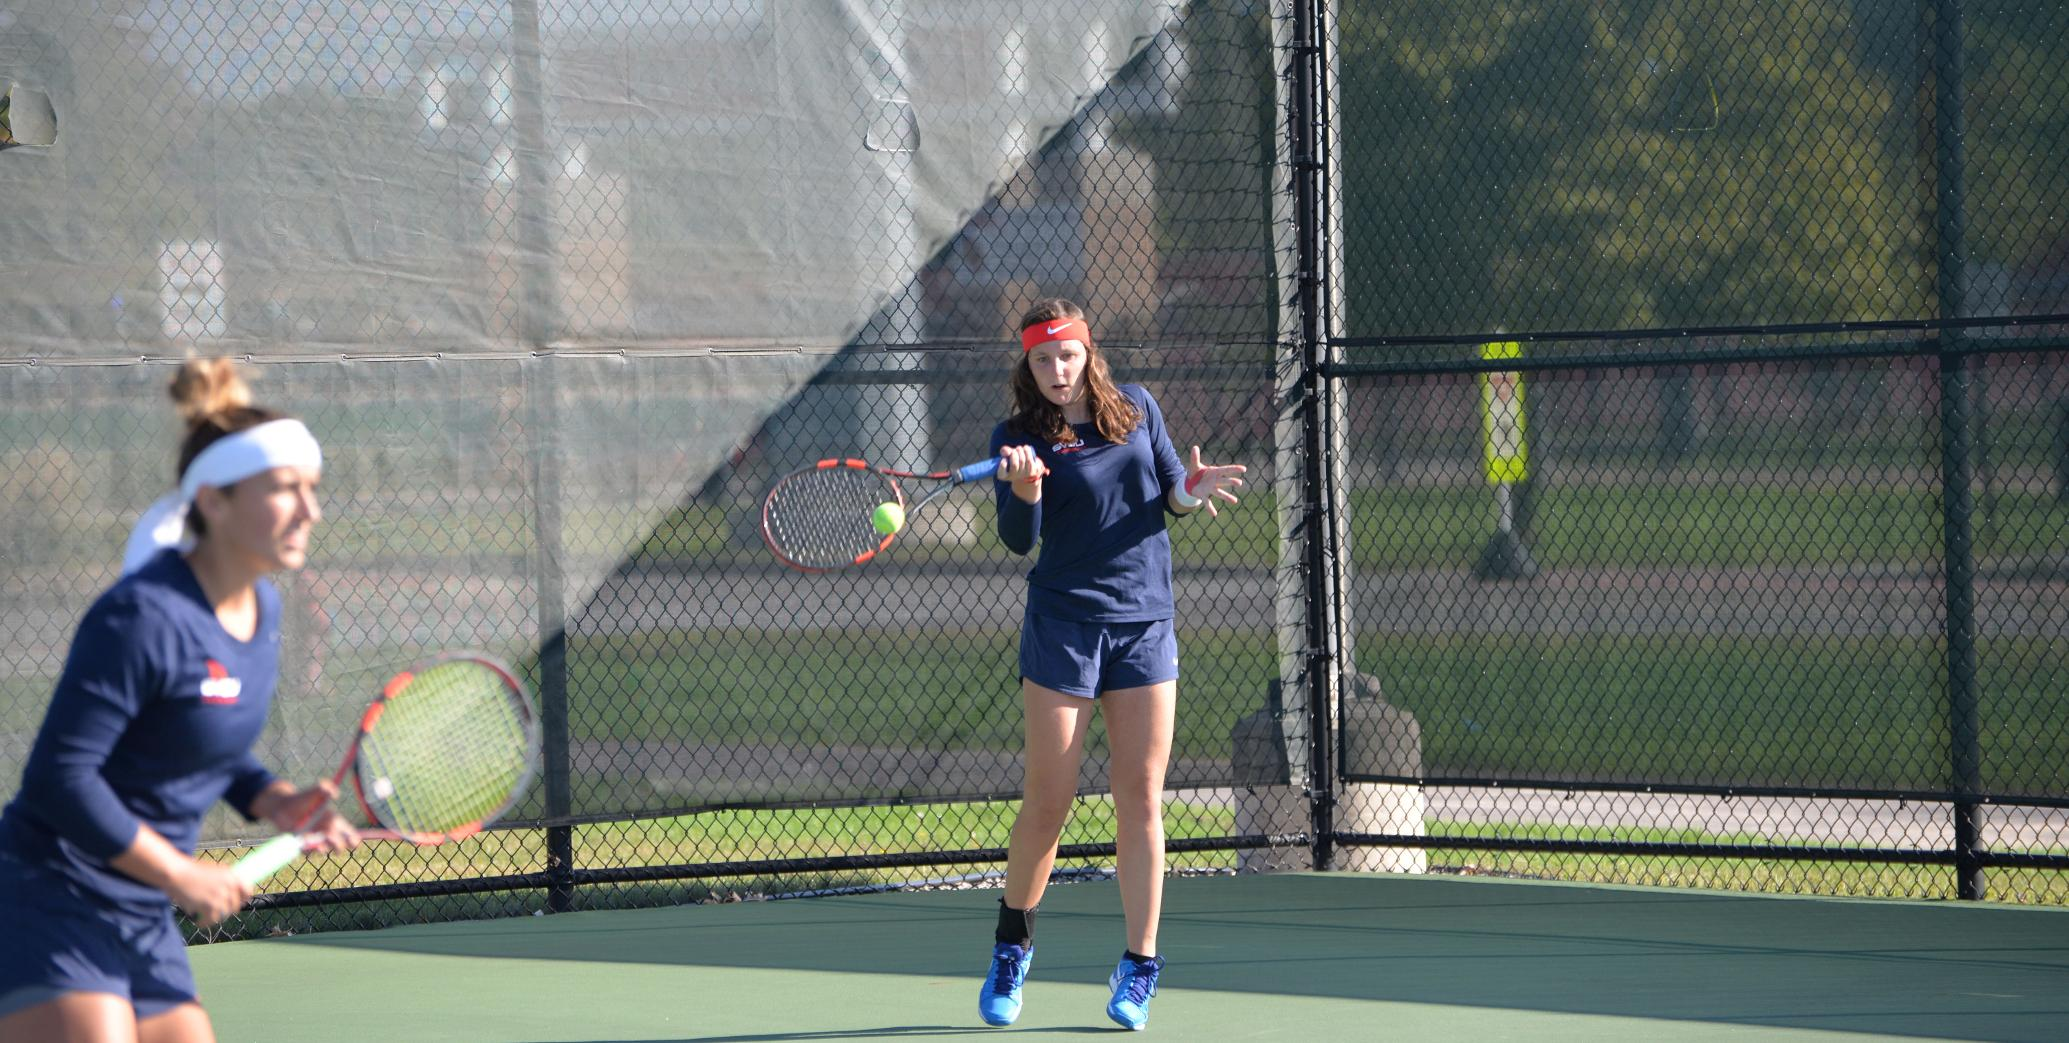 Tennis Falls to Ferris State in GLIAC Tourney Opener, 5-3